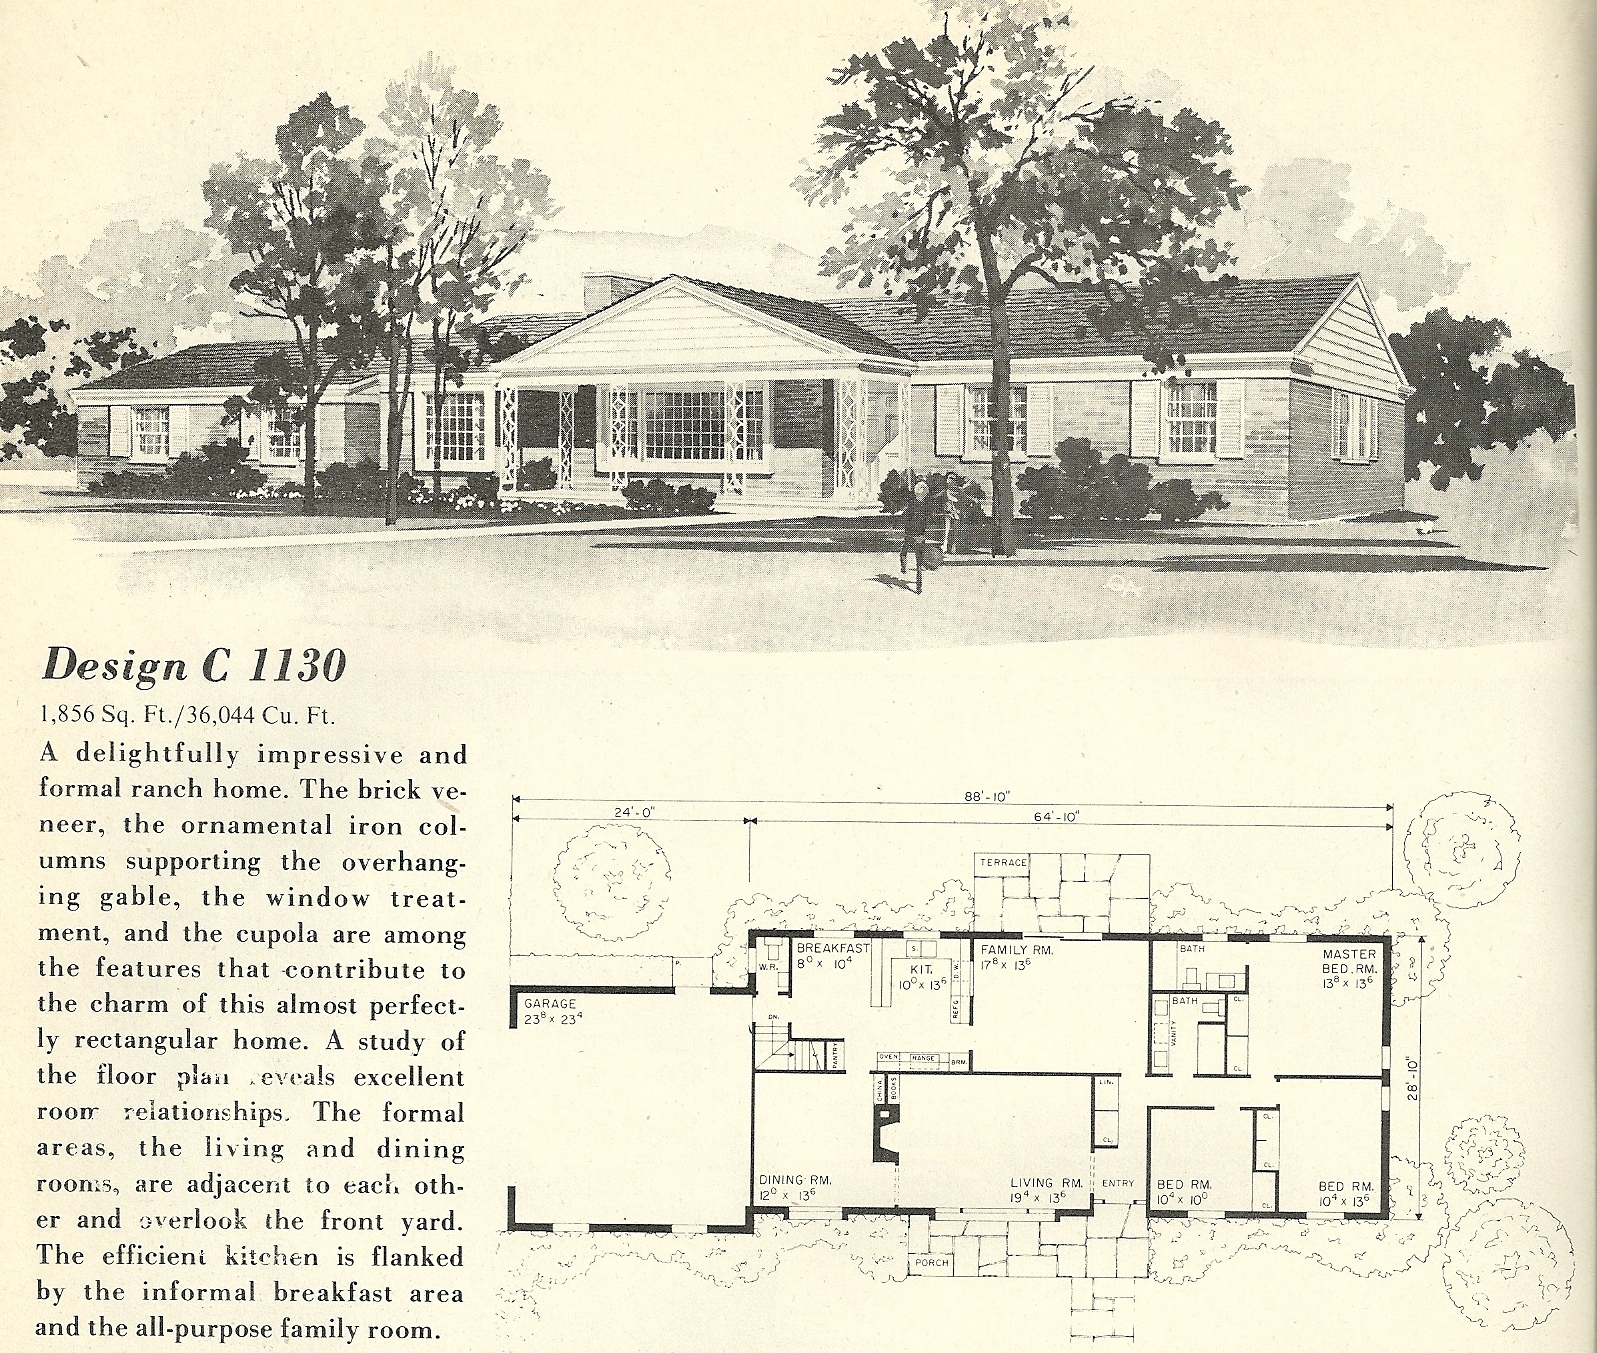 vintage house plans 1130 antique alter ego